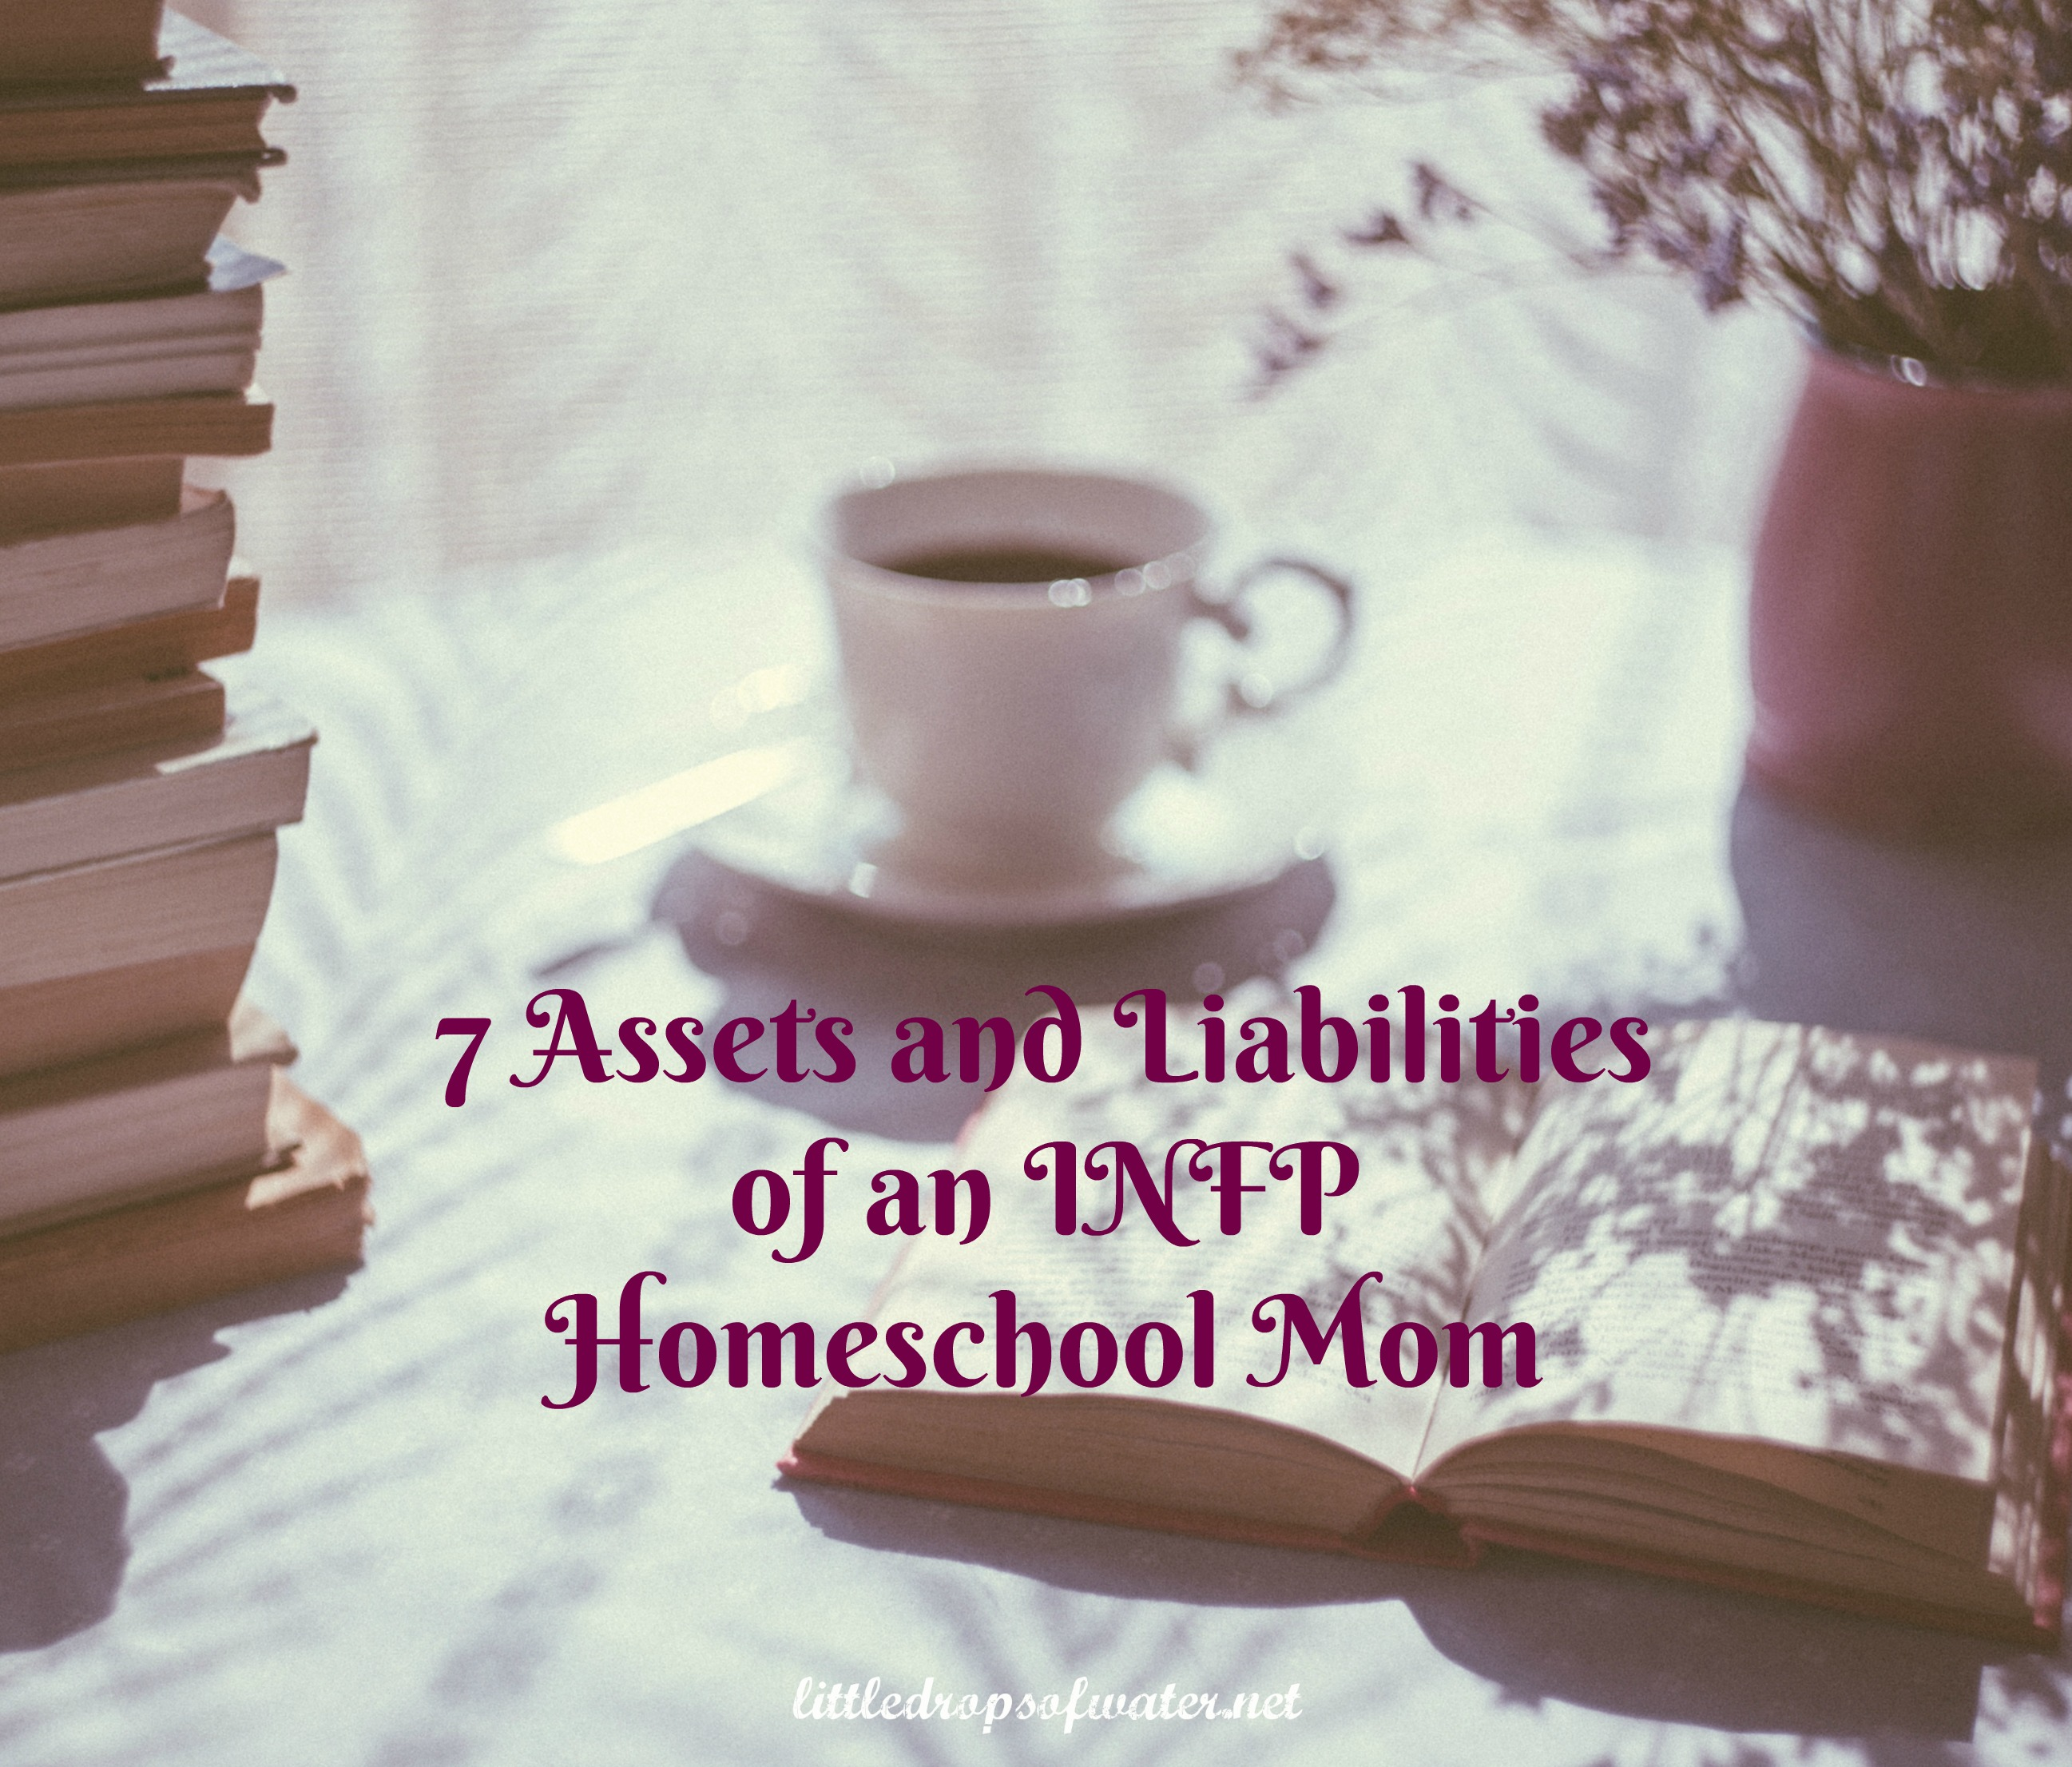 7 Assets and Liabilities of an INFP Homeschool Mom – Little